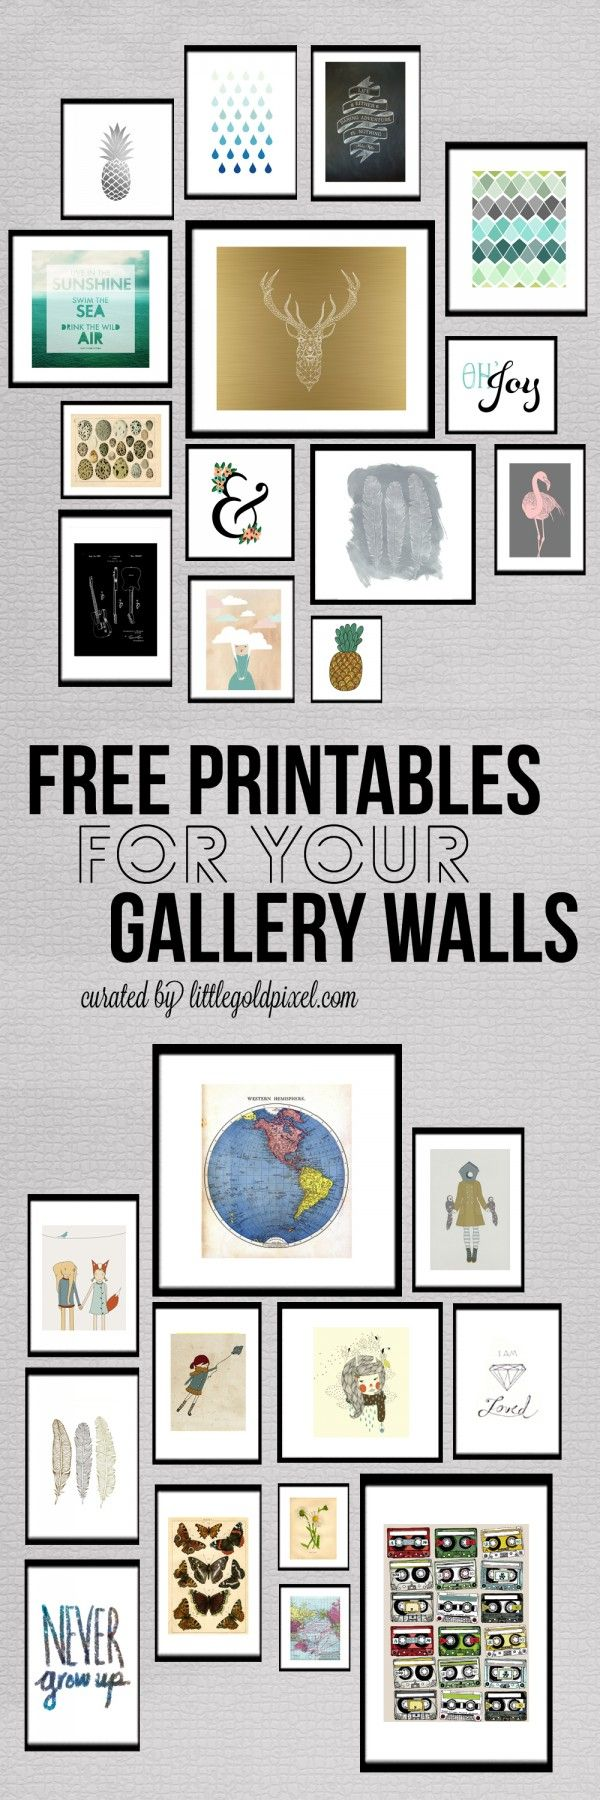 Printouts for your gallery wall